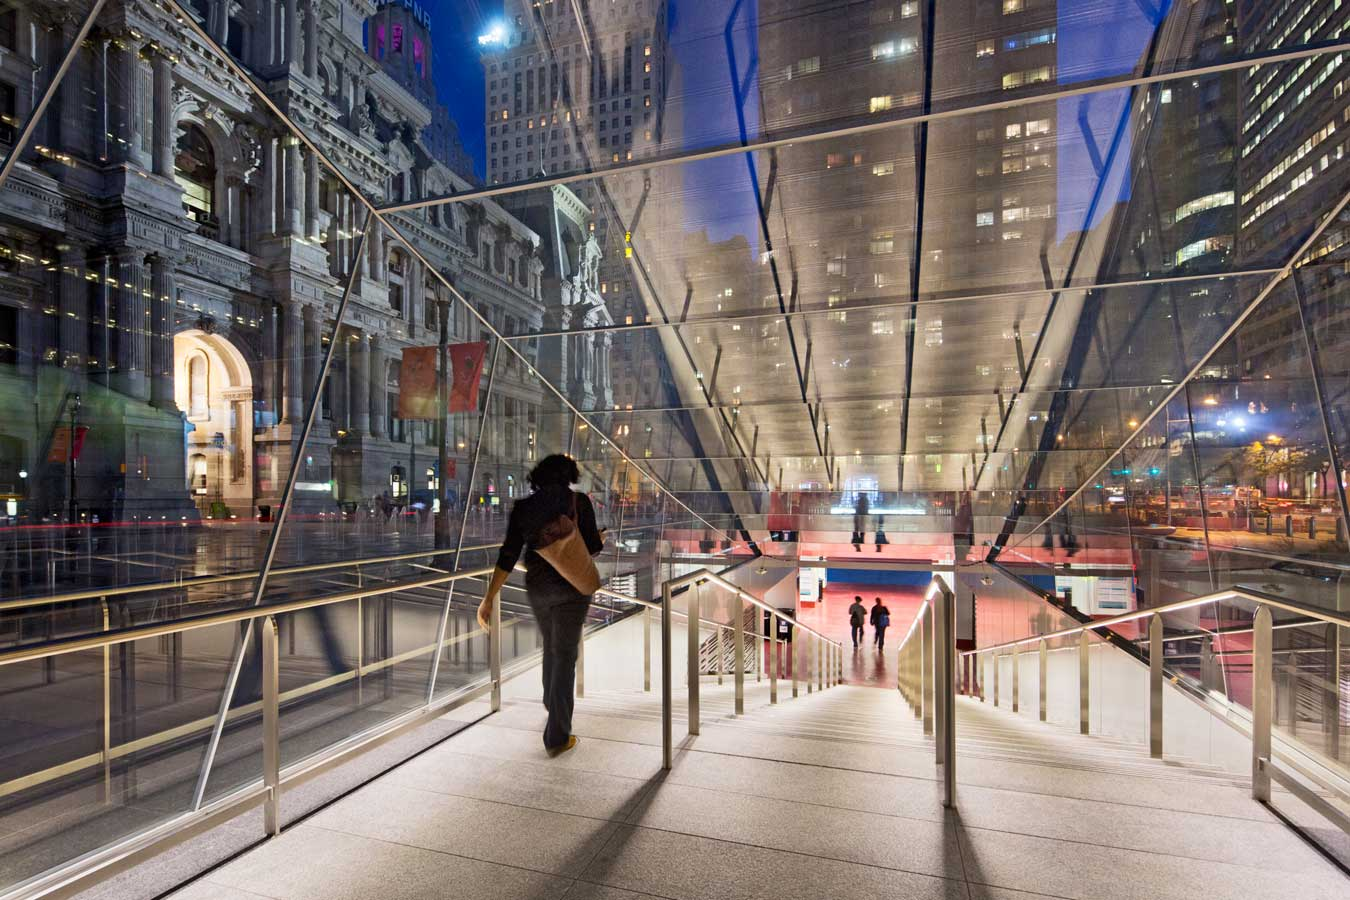 <p>Self-cleaning, shatterproof glass, and graffiti-resistant film help to protect and maintain the entryway pavilions to underground transit. <br><small>© James Ewing Photography</small></p>